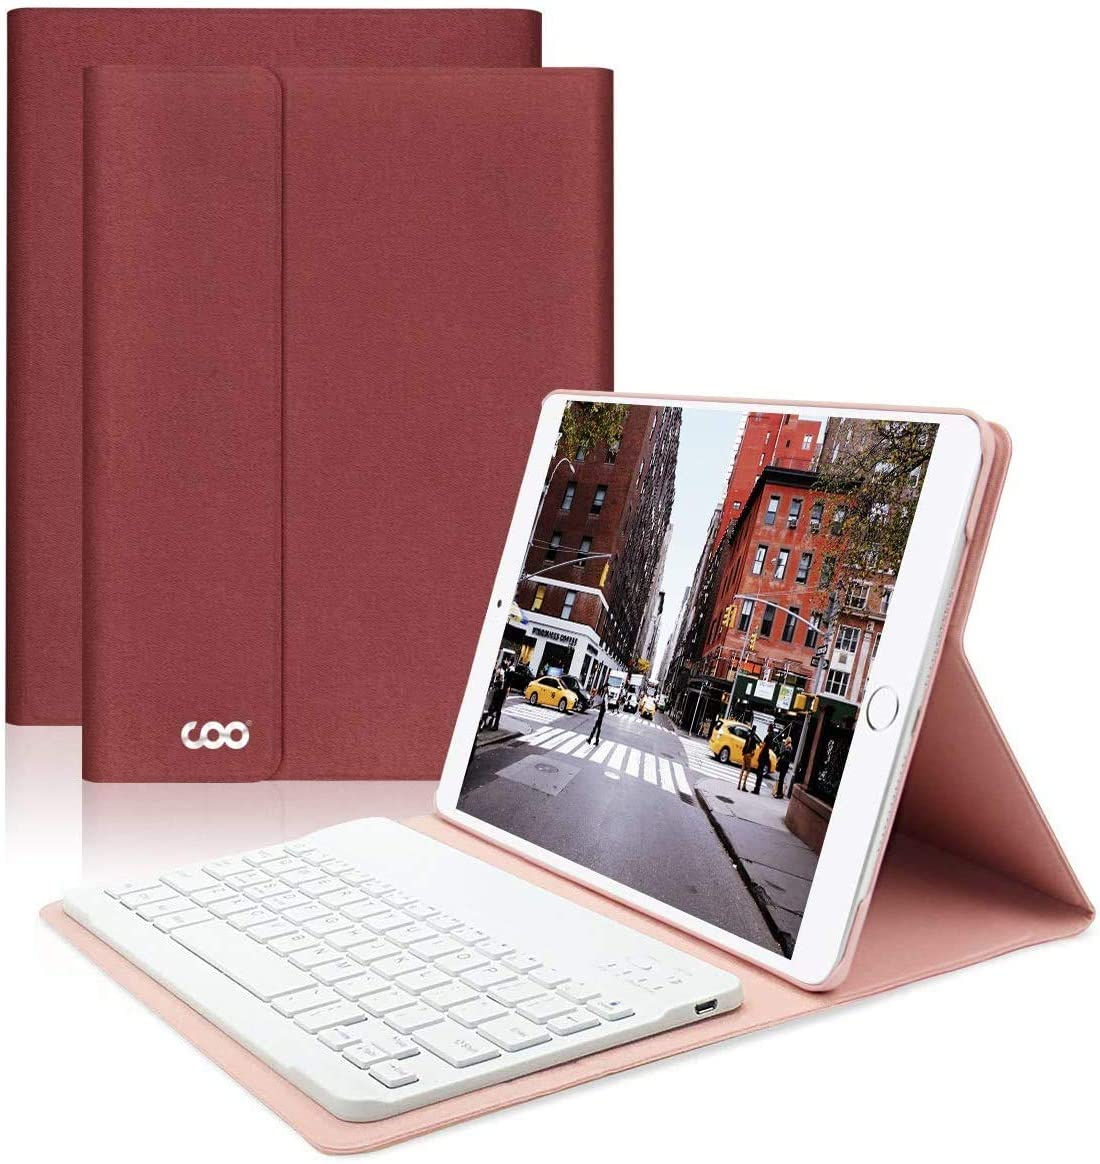 iPad Keyboard Case 6th Generation 2018 for iPad Pro 2017 (5th Gen) - iPad Air 2/1 - COO Detachable Wireless Bluetooth Keyboard - Magnetic Auto Sleep/Wake (Red with White Keyboard)